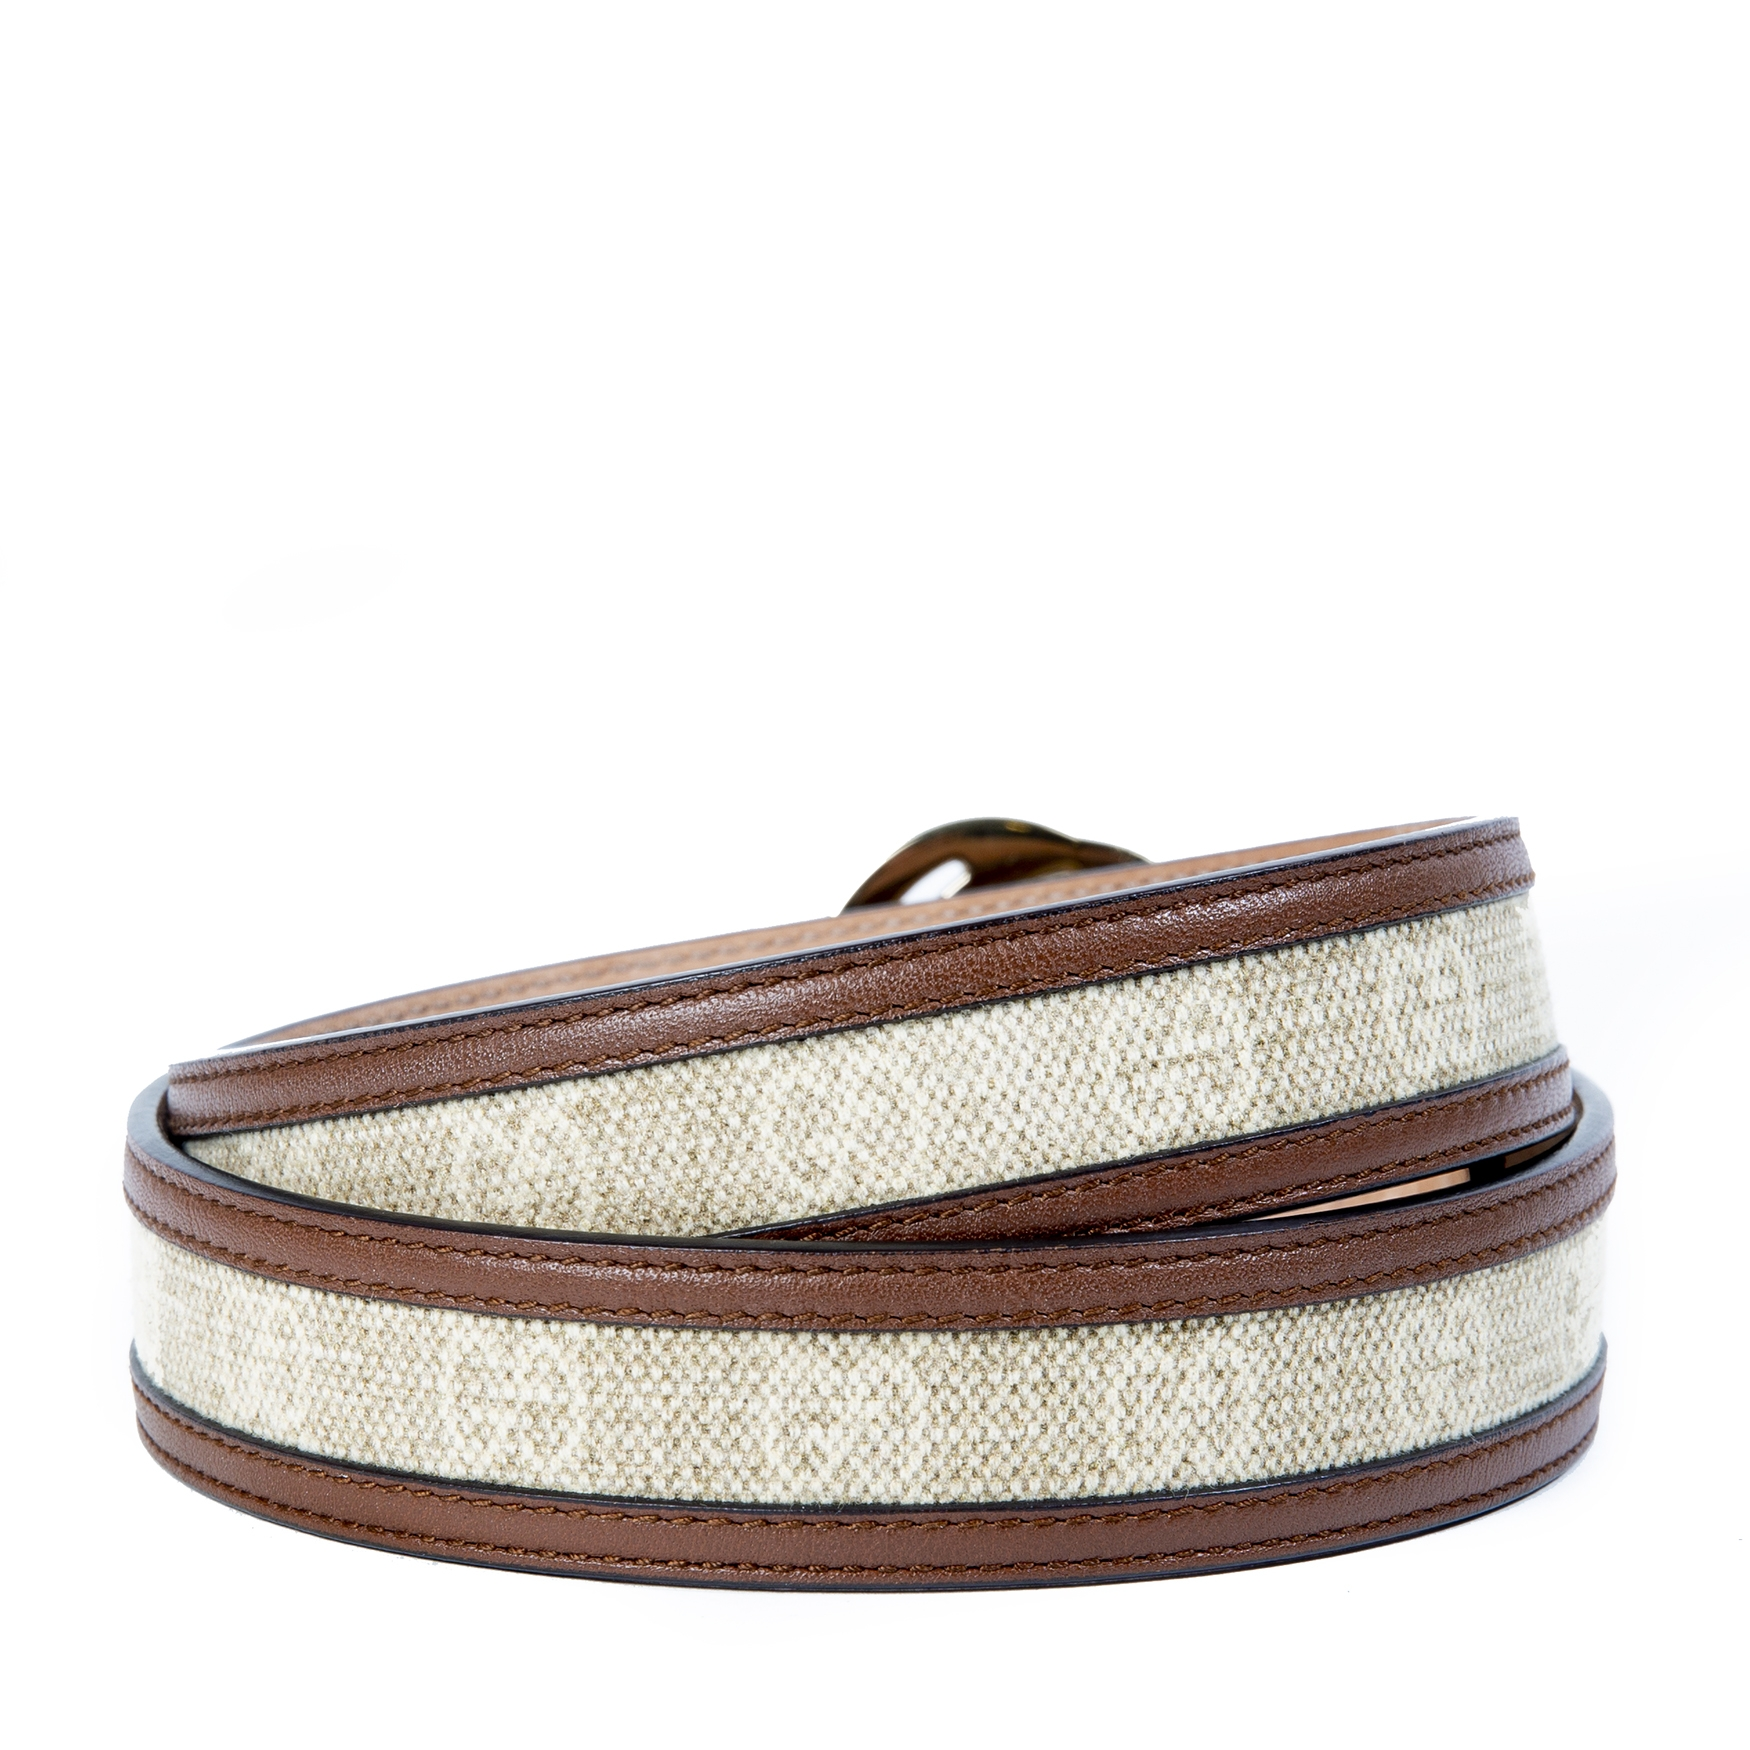 04b41519a95e ... Gucci Monogram Interlocking G Belt - Size 80 now for sale at labellov  vintage fashion webshop